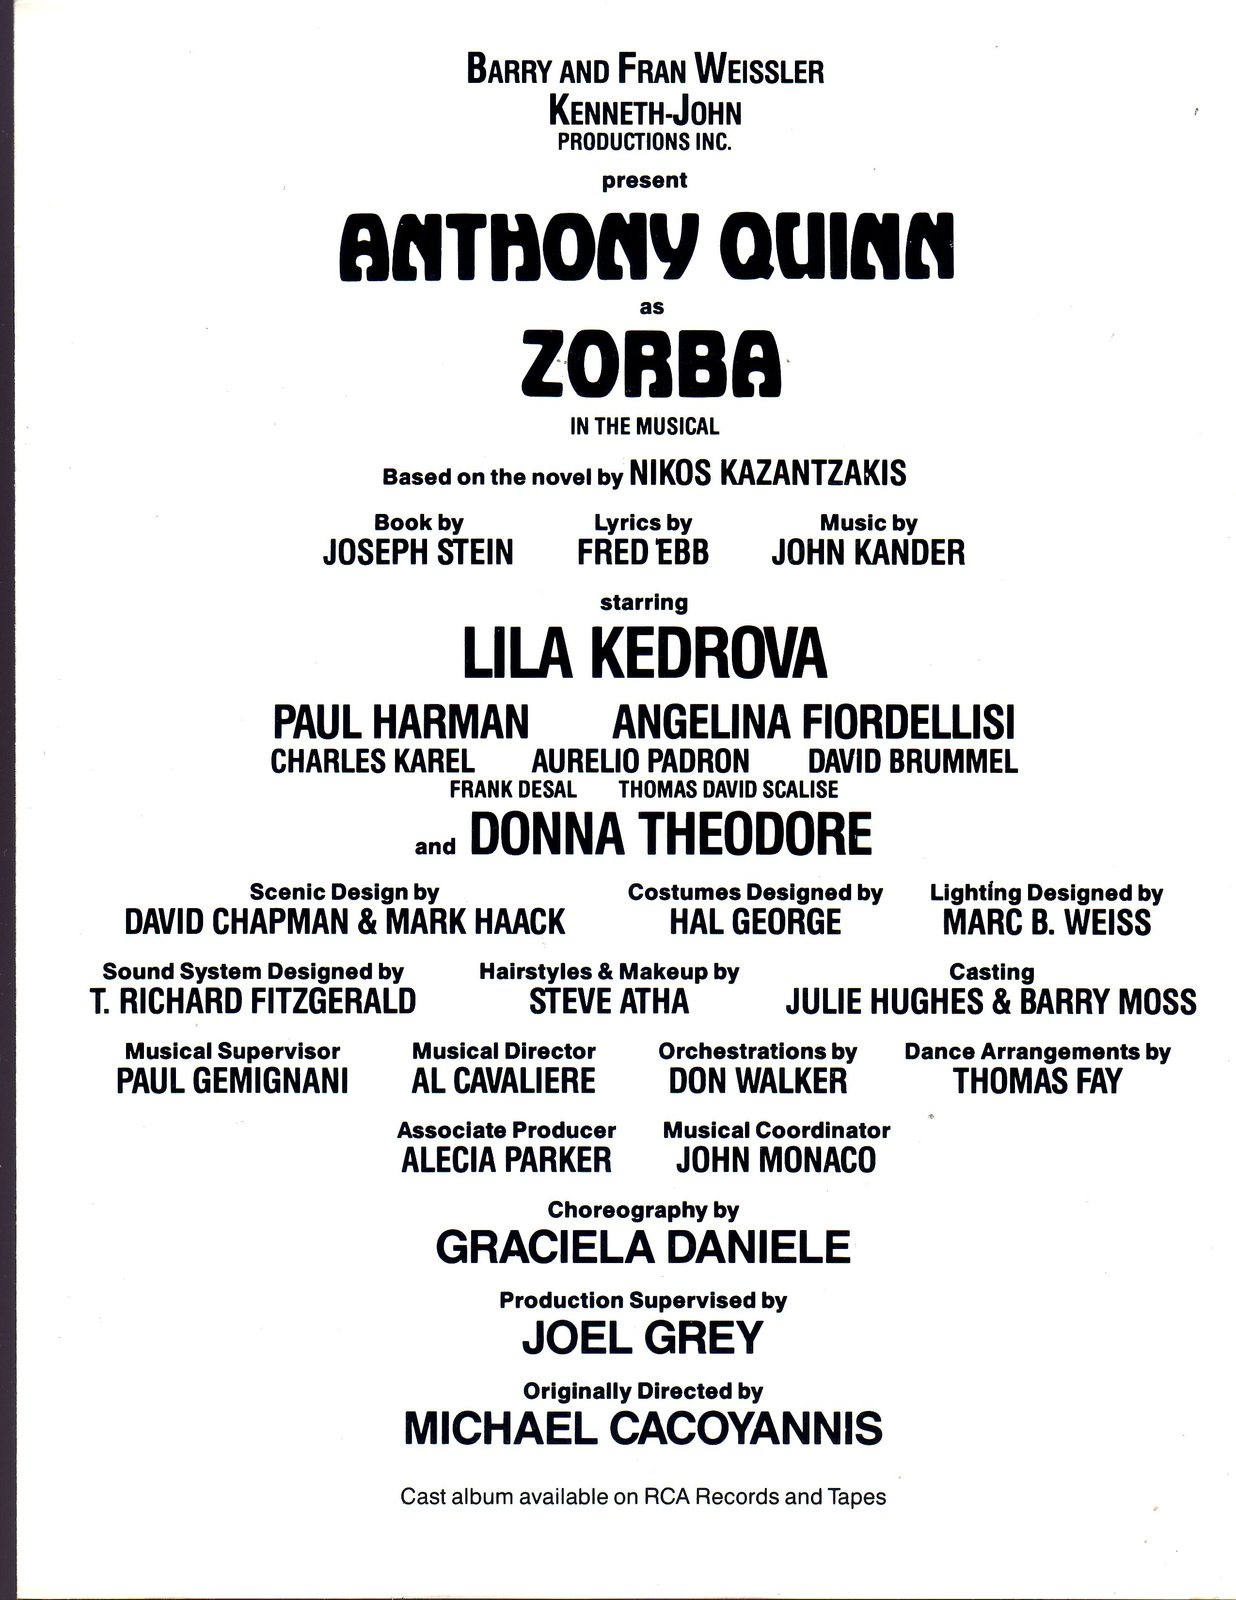 Anthony Quinn is ZORBA (Play Book) image 3